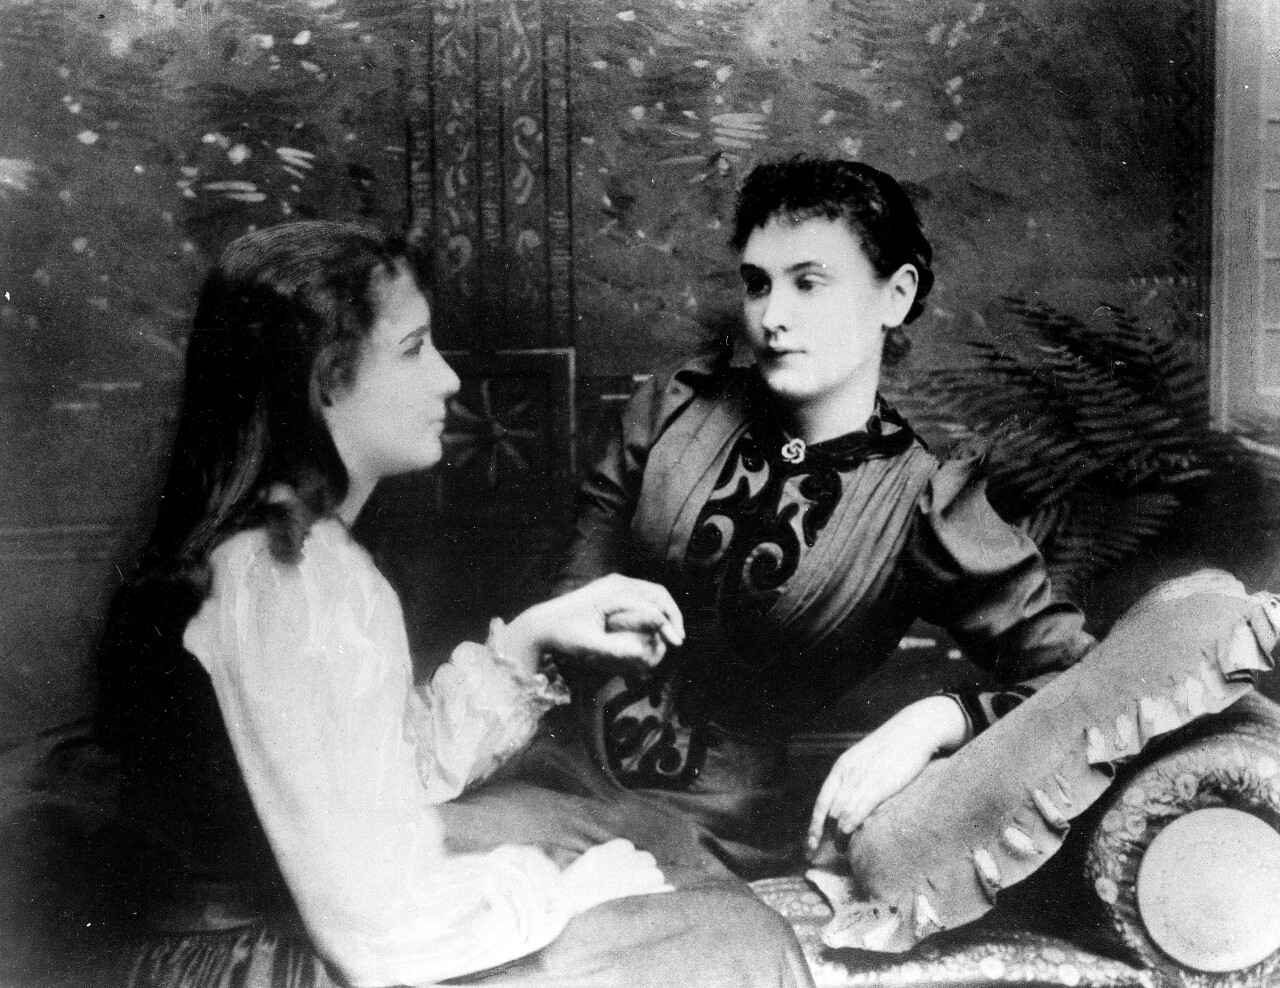 Helen Keller, left, at age 13, is photographed with her teacher, Anne Sullivan, in 1893 at an unknown location. Keller was nineteen months old when a disease left her blind and deaf. (AP Photo)